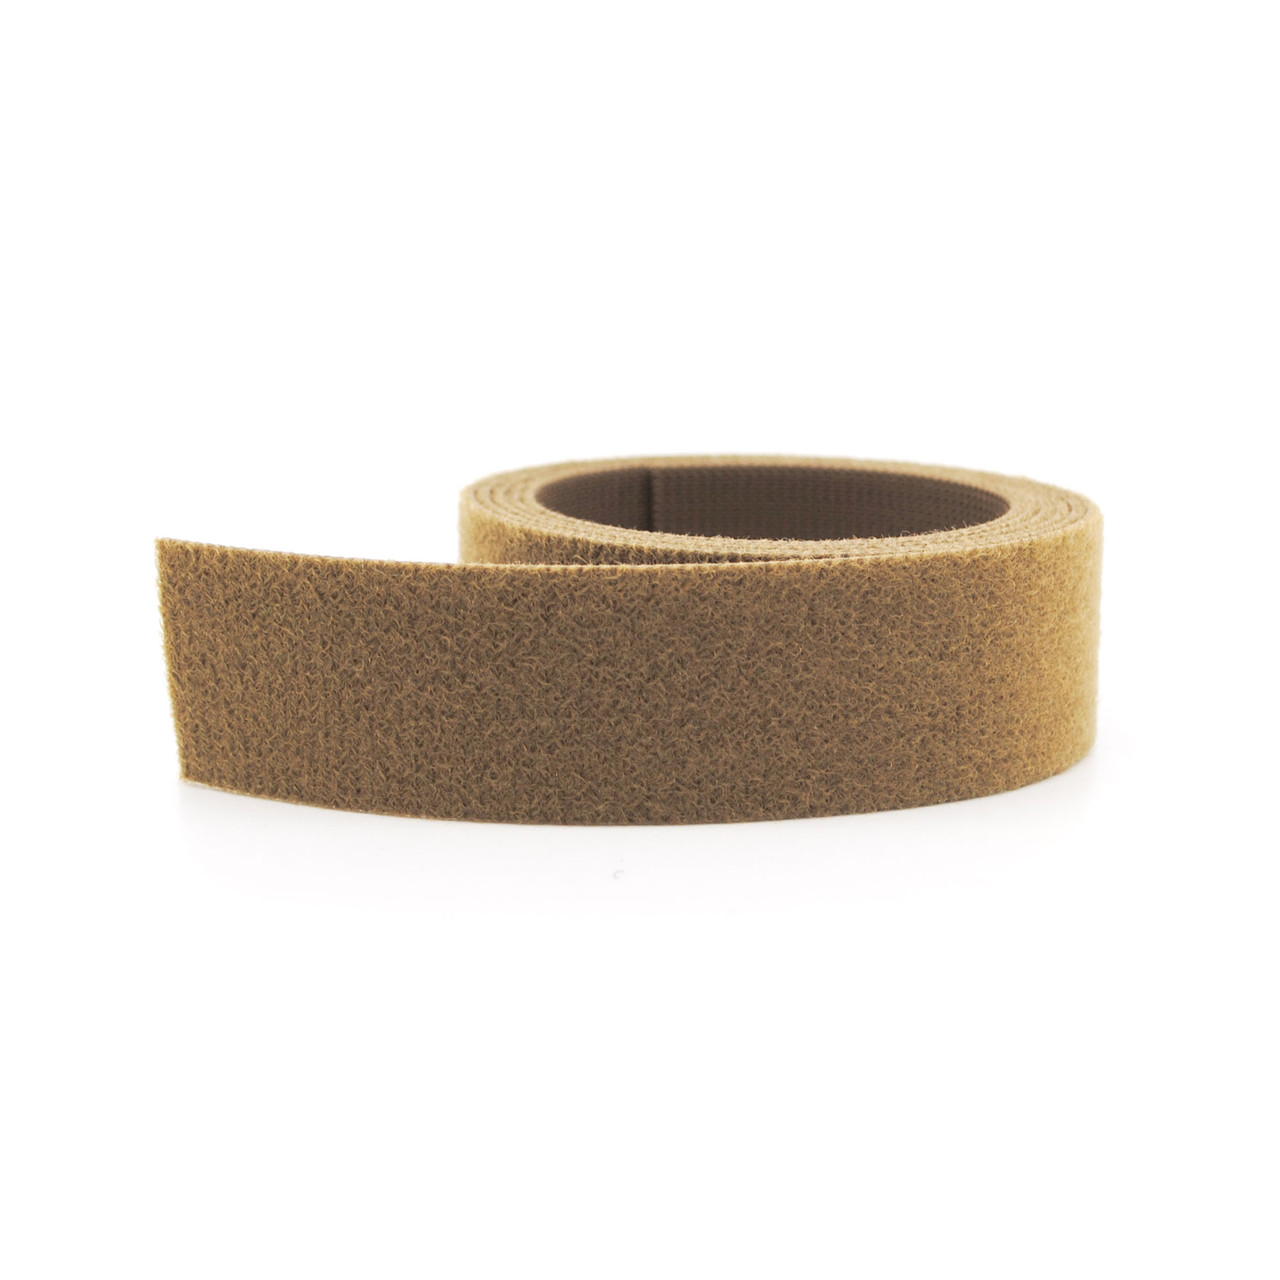 """VELCRO® ONE-WRAP® MIL SPEC Tape - 1"""" Coyote Brown/ Velcro Straps - Bundling Straps - Velcro Tie - Velcro Strap"""